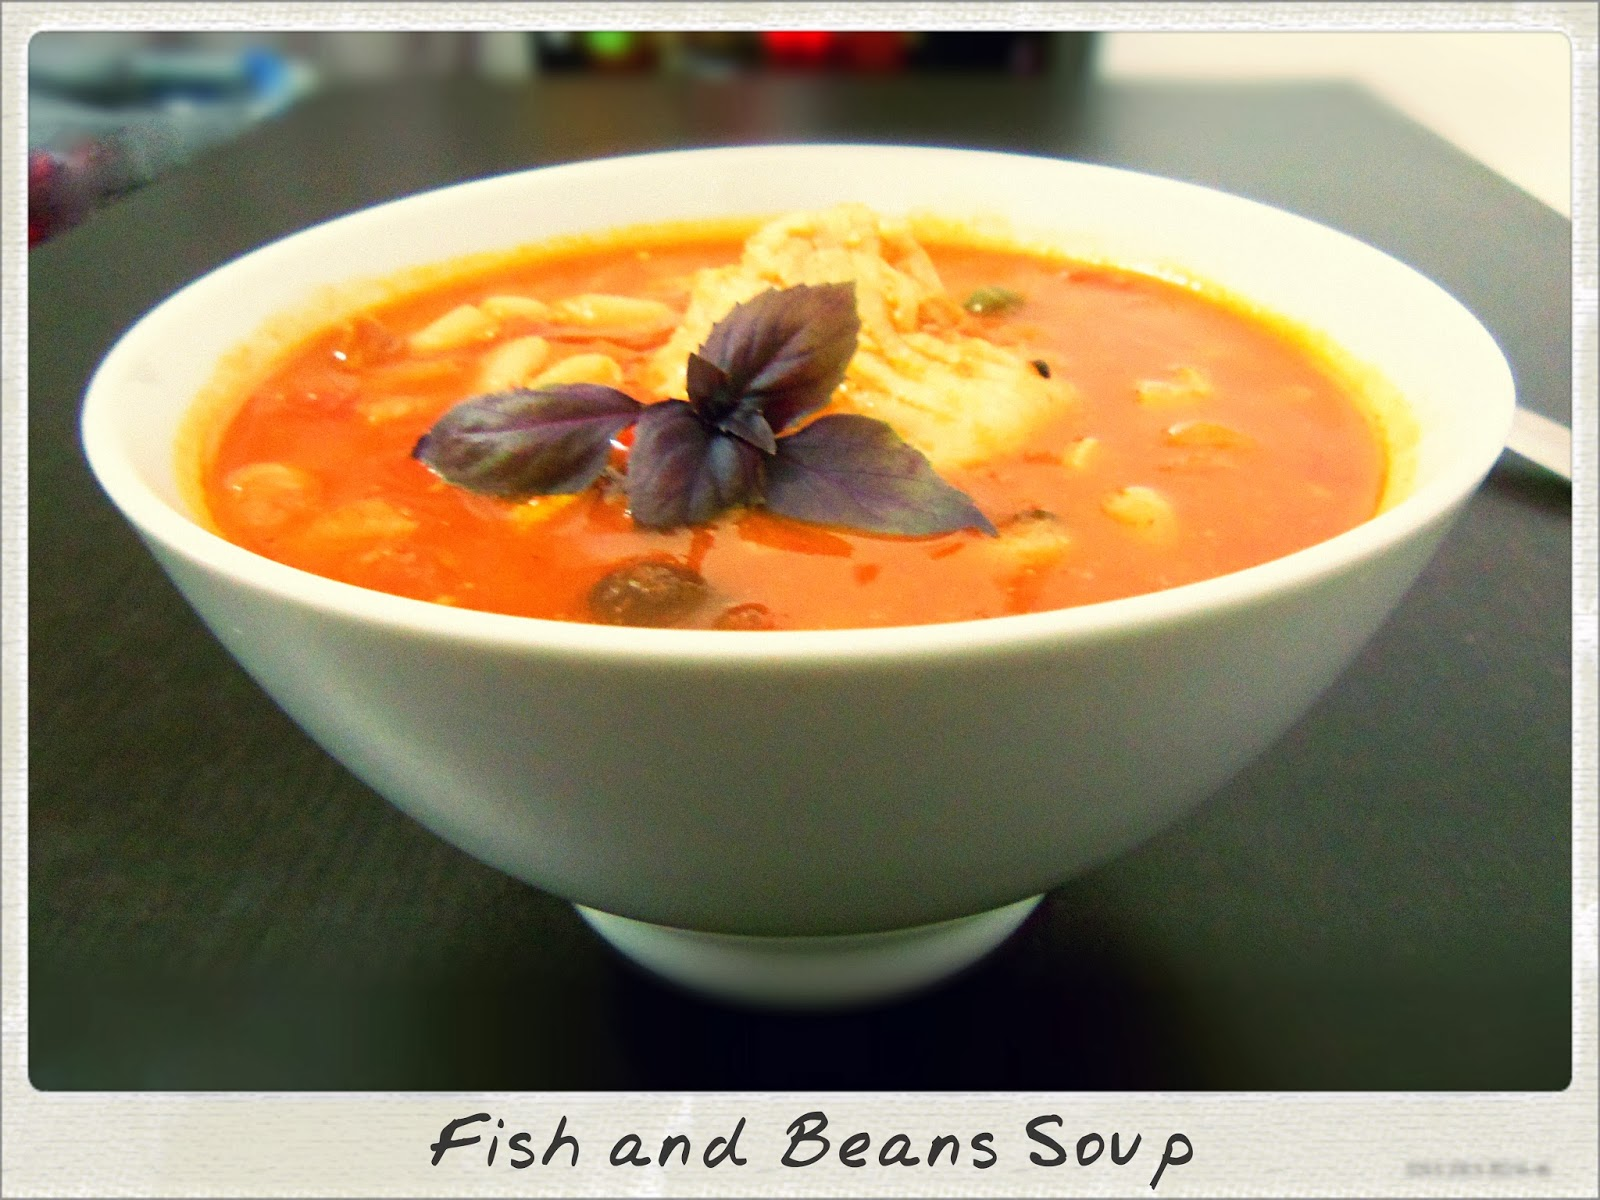 You've Got Meal!: Comfort Food: Fish and Beans Soup | You've Got Meal!